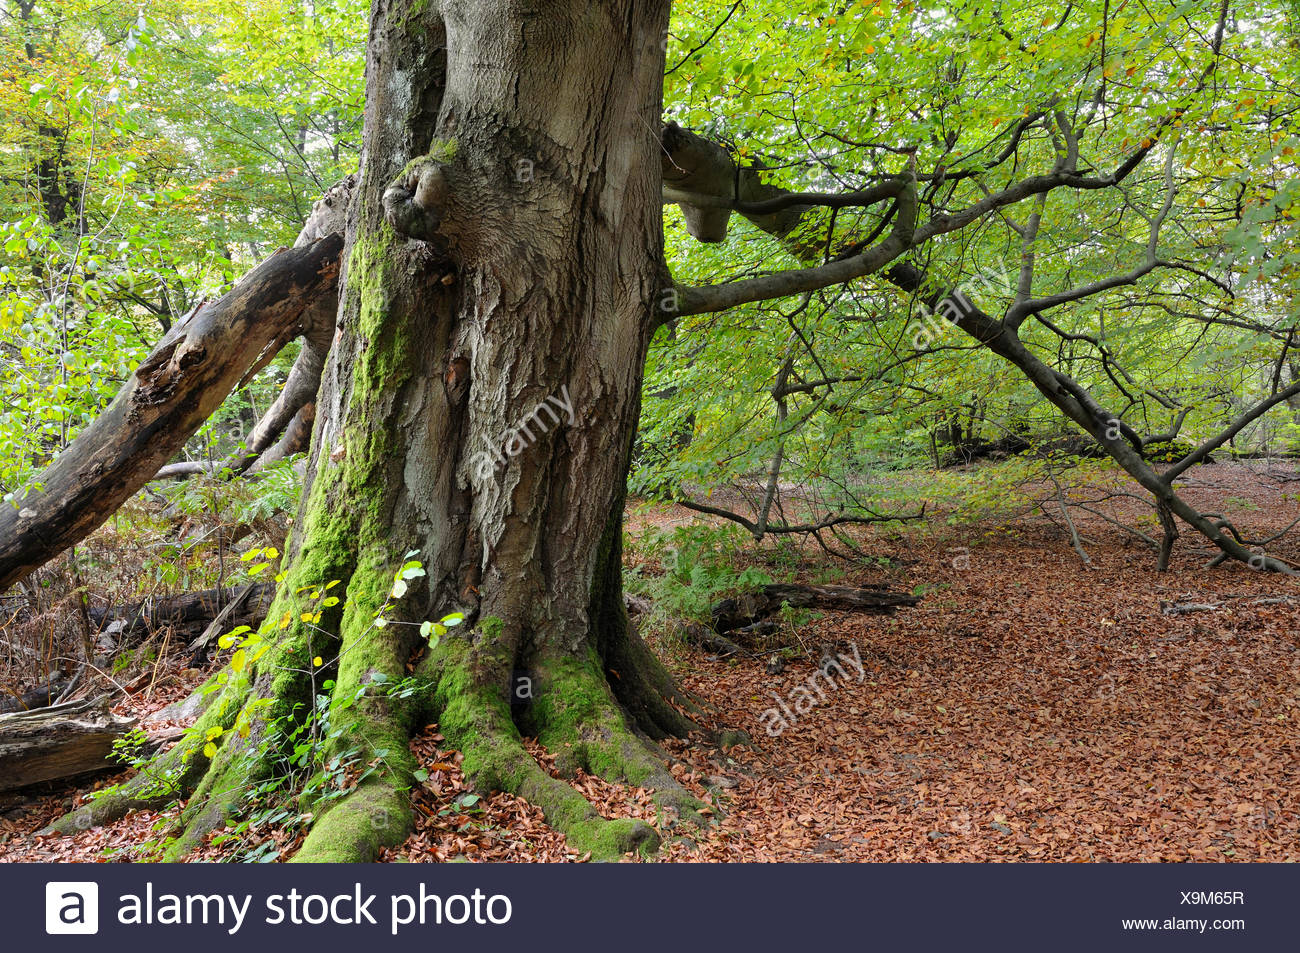 common beech (Fagus sylvatica), mossy trunk of a beech in Urwald Sababurg, Germany, Hesse - Stock Image